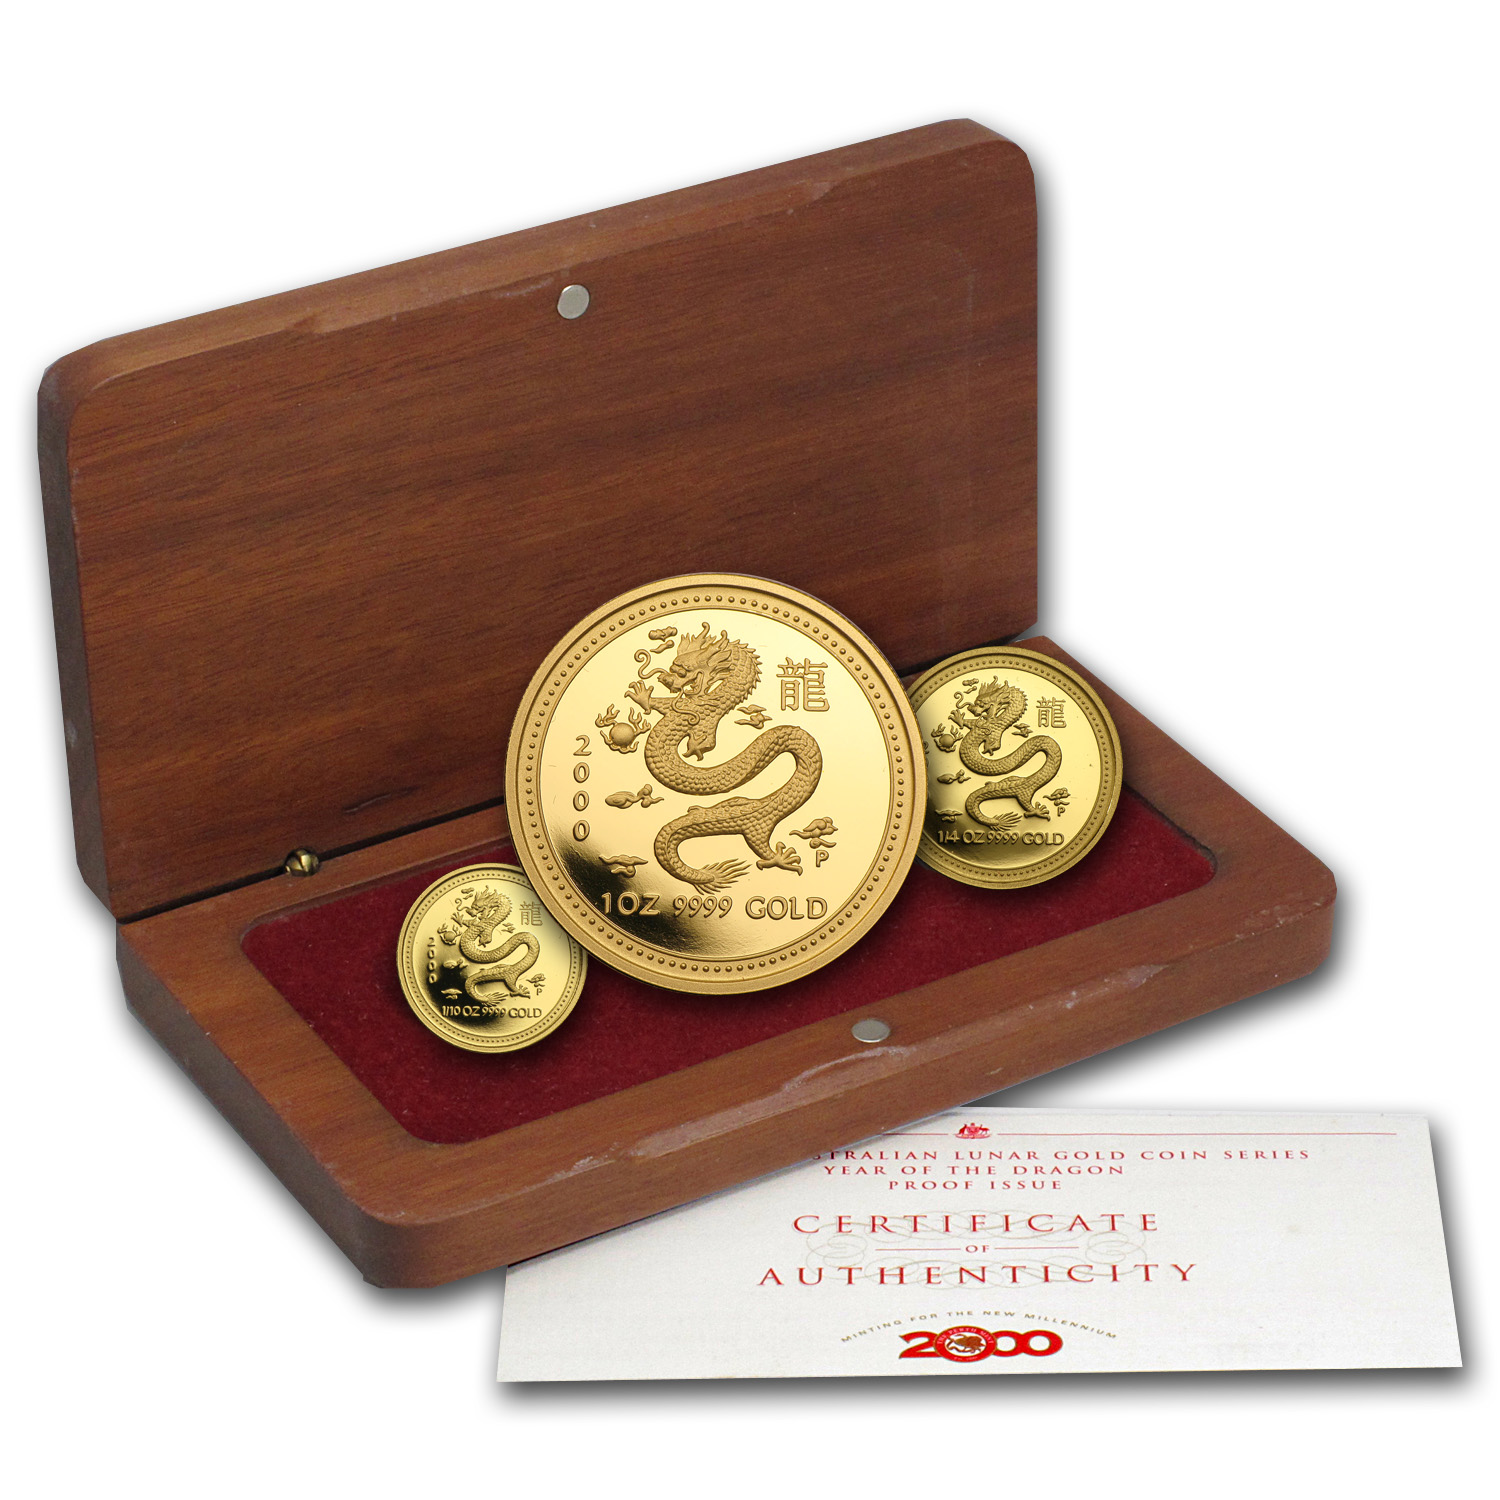 2000 Proof Gold Year of the Dragon Lunar 3-Coin Set (Series I)